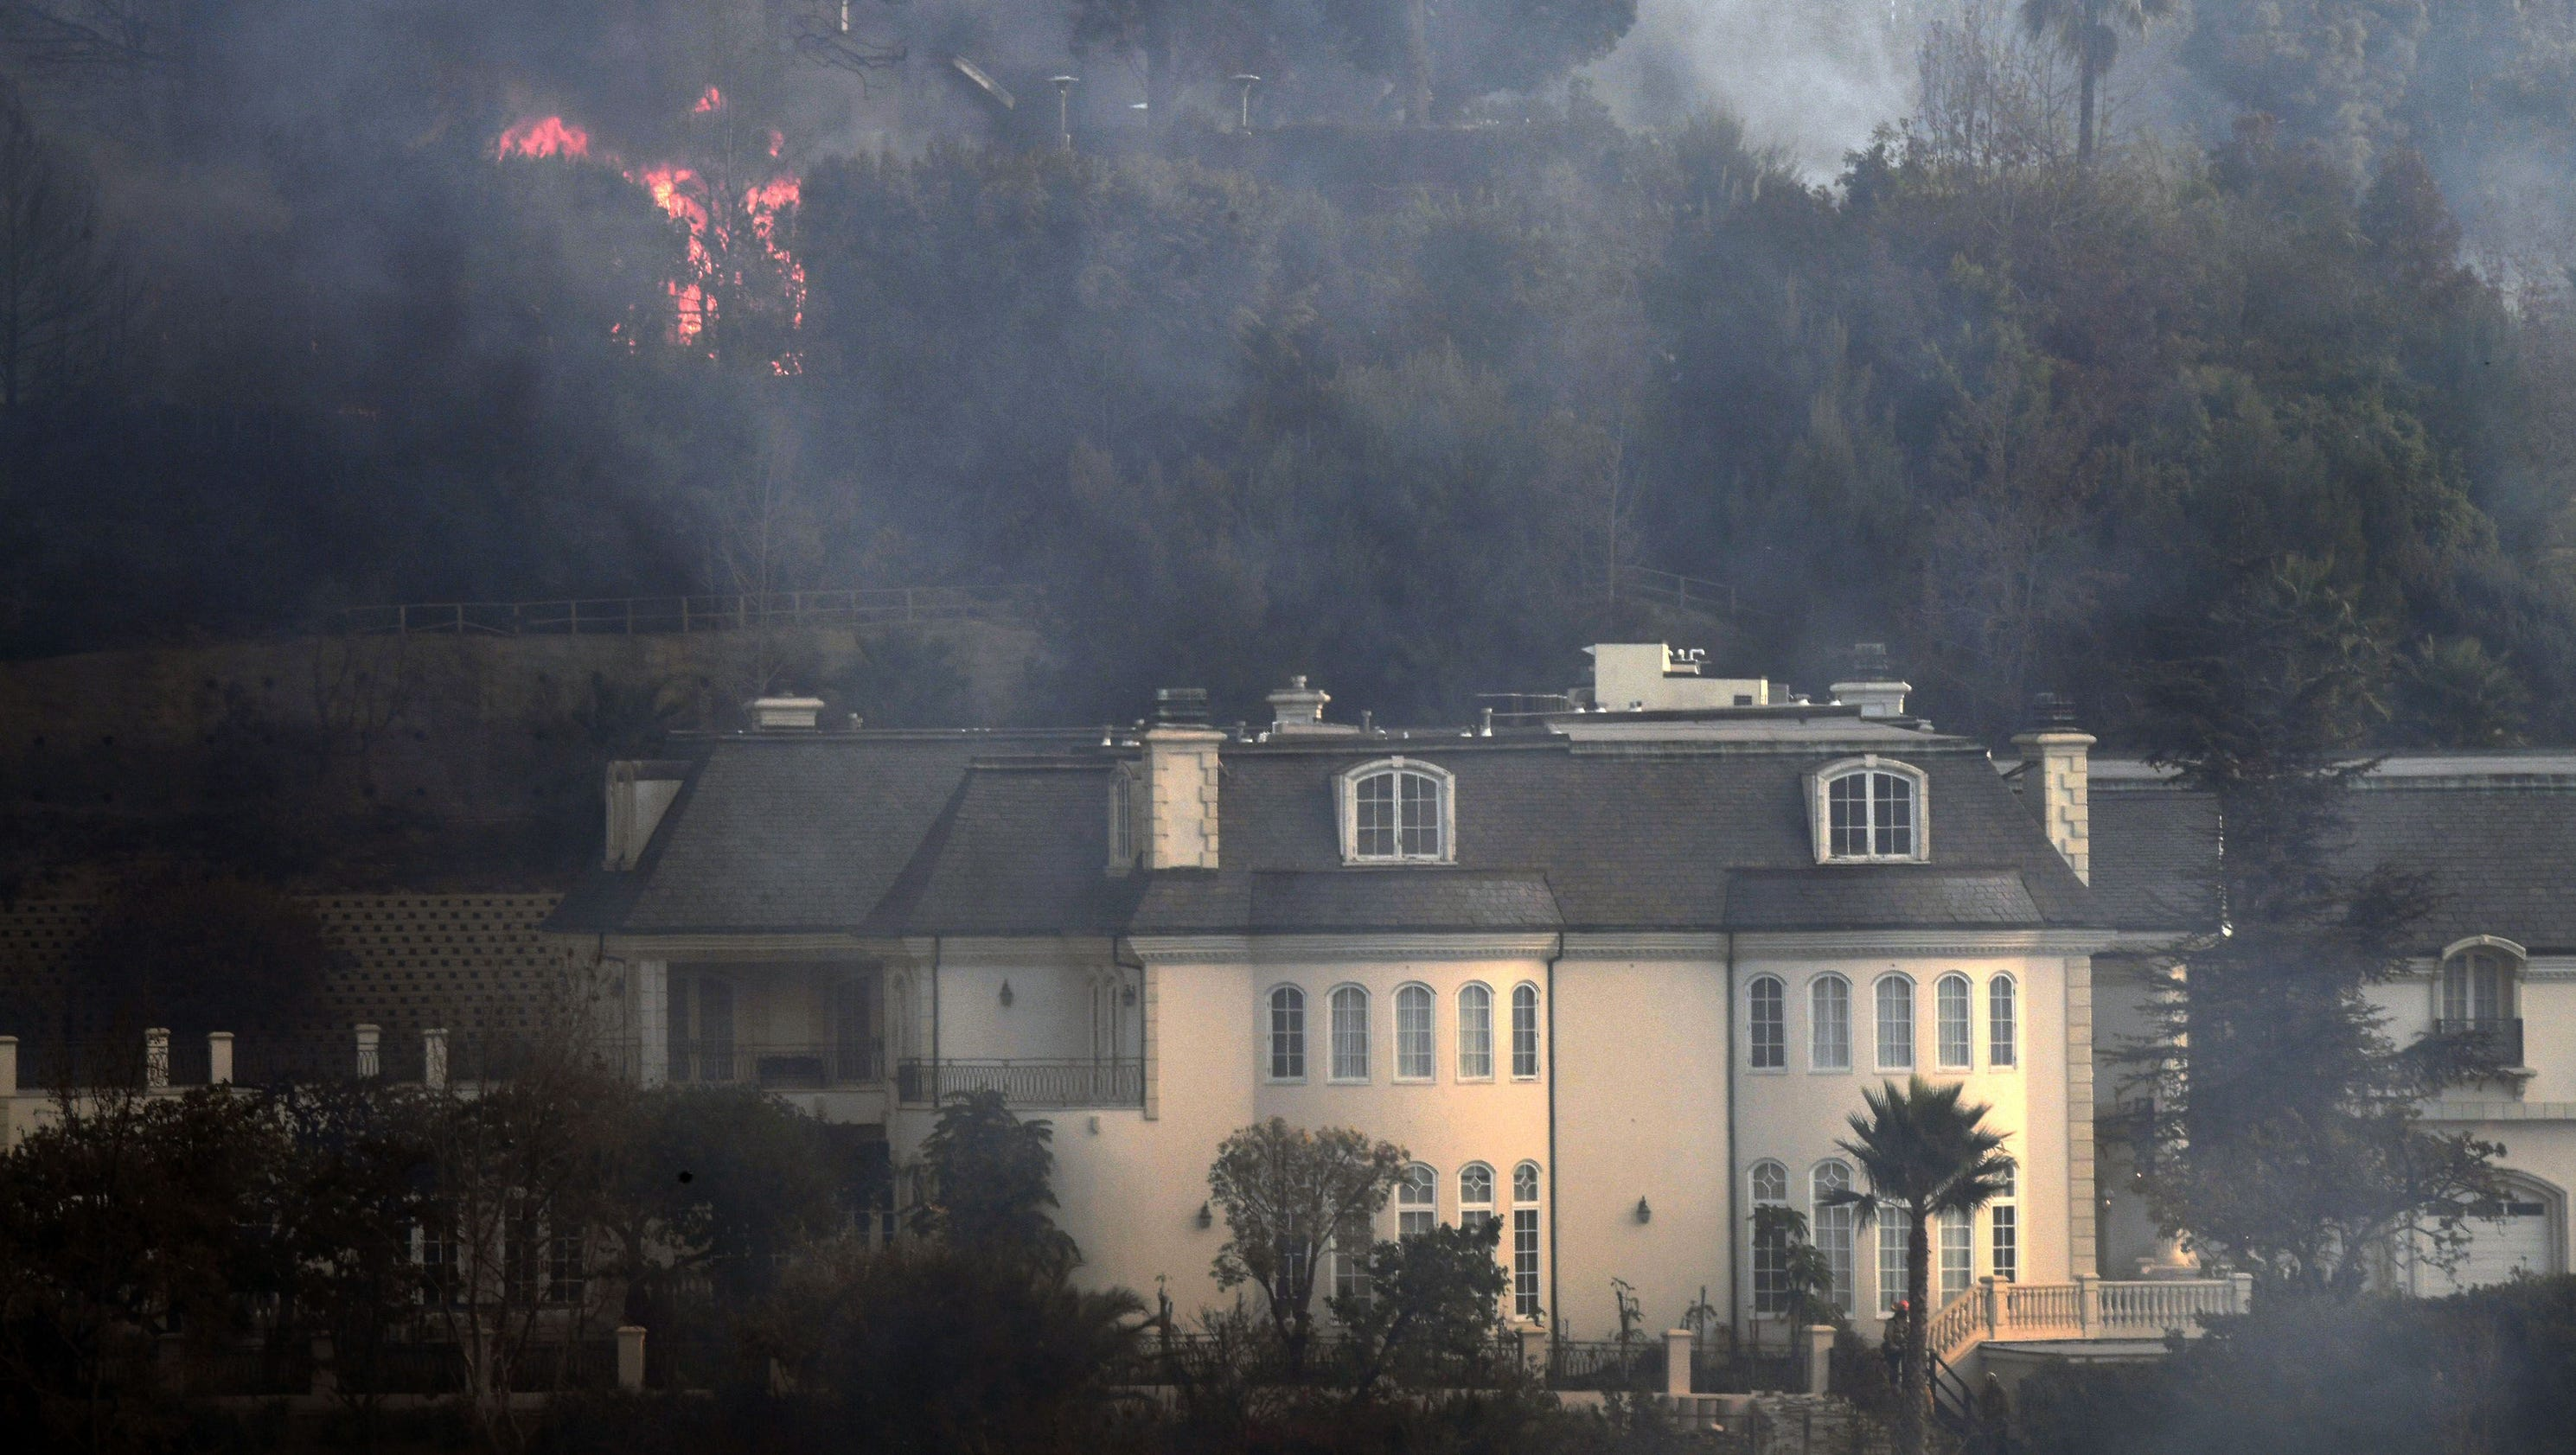 Los Angeles Fires Update >> California fires: Navigation apps like Waze sent commuters into flames, drivers say